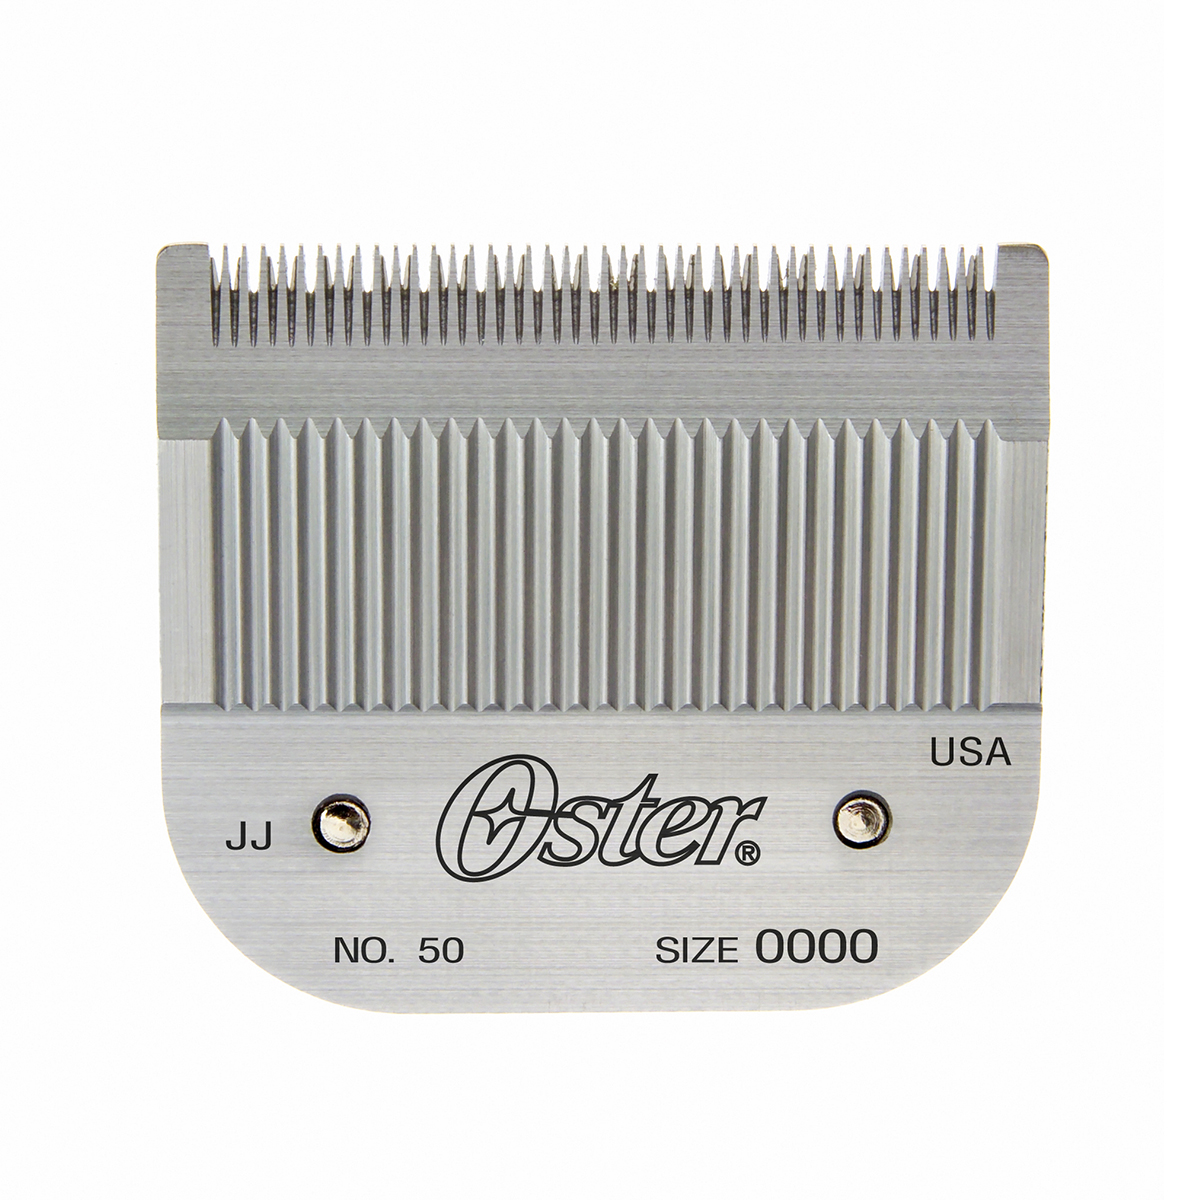 Oster Detachable Blade Size 0000 Fits Turbo 111 Clippers, 76911-016